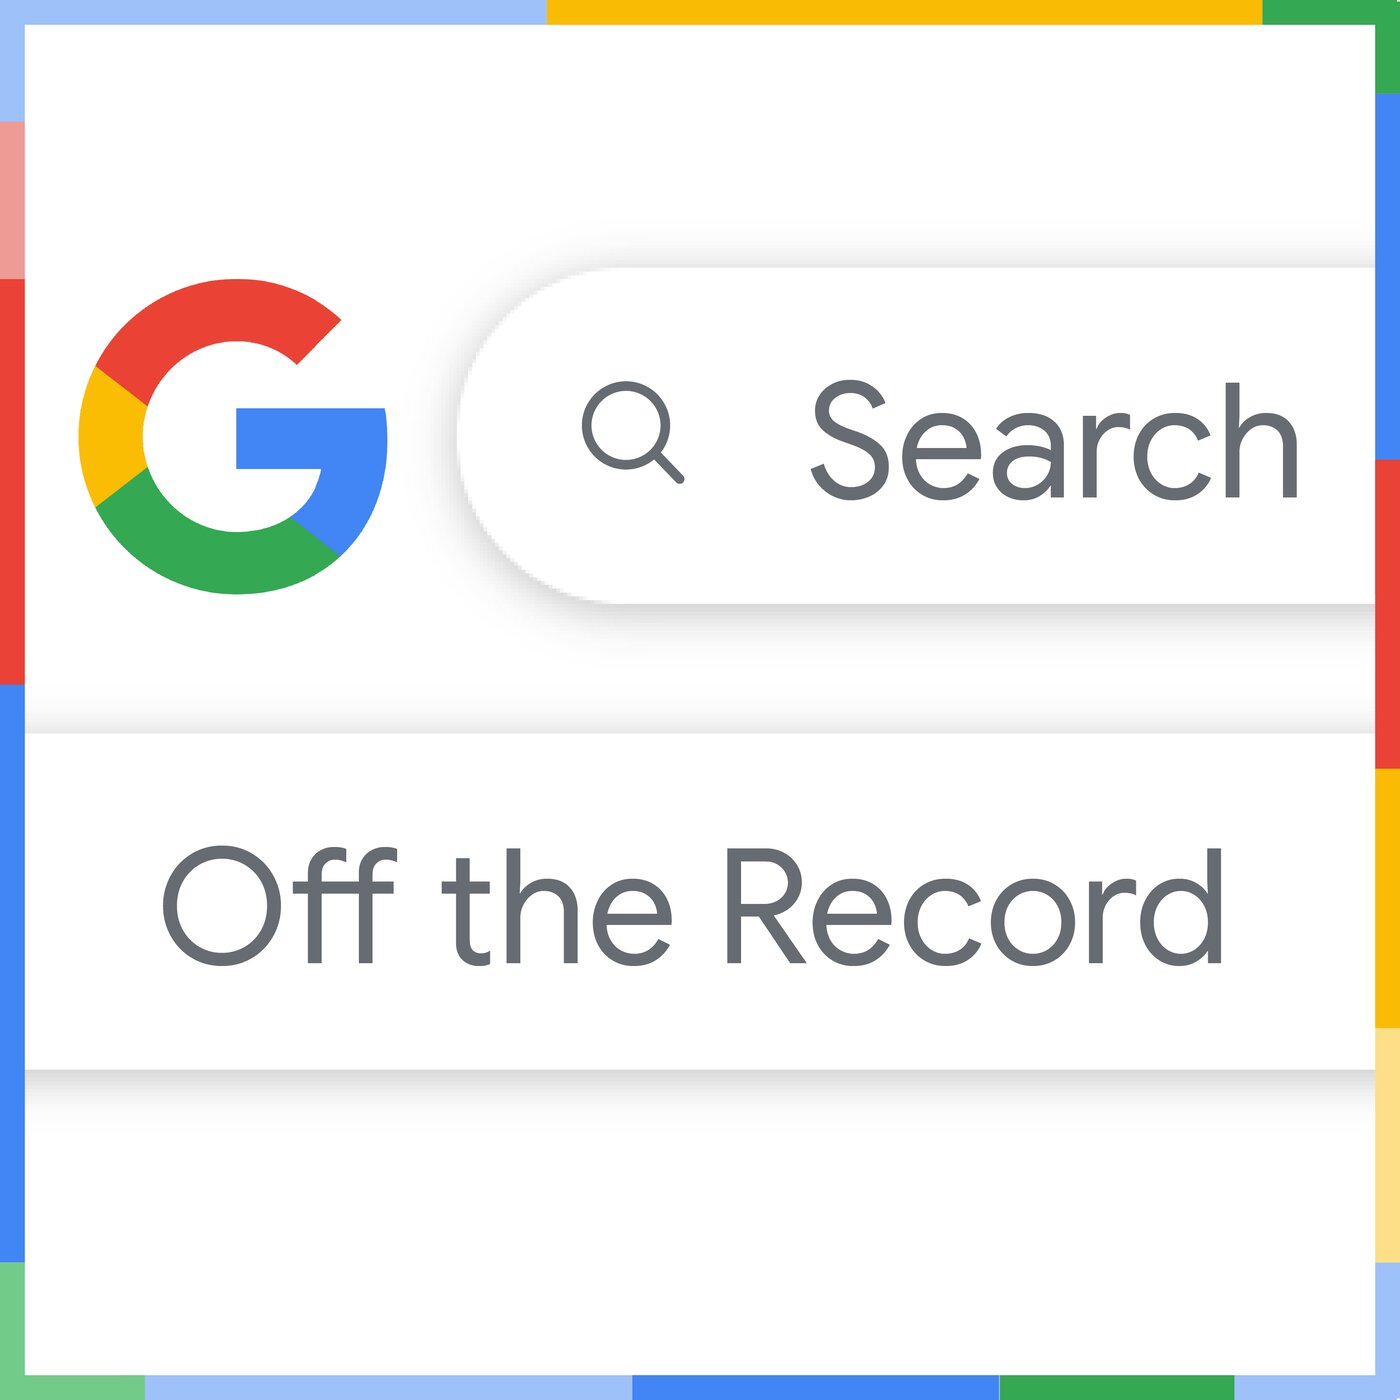 Search Off the Record - Trailer (New Podcast Show by Google Webmasters)